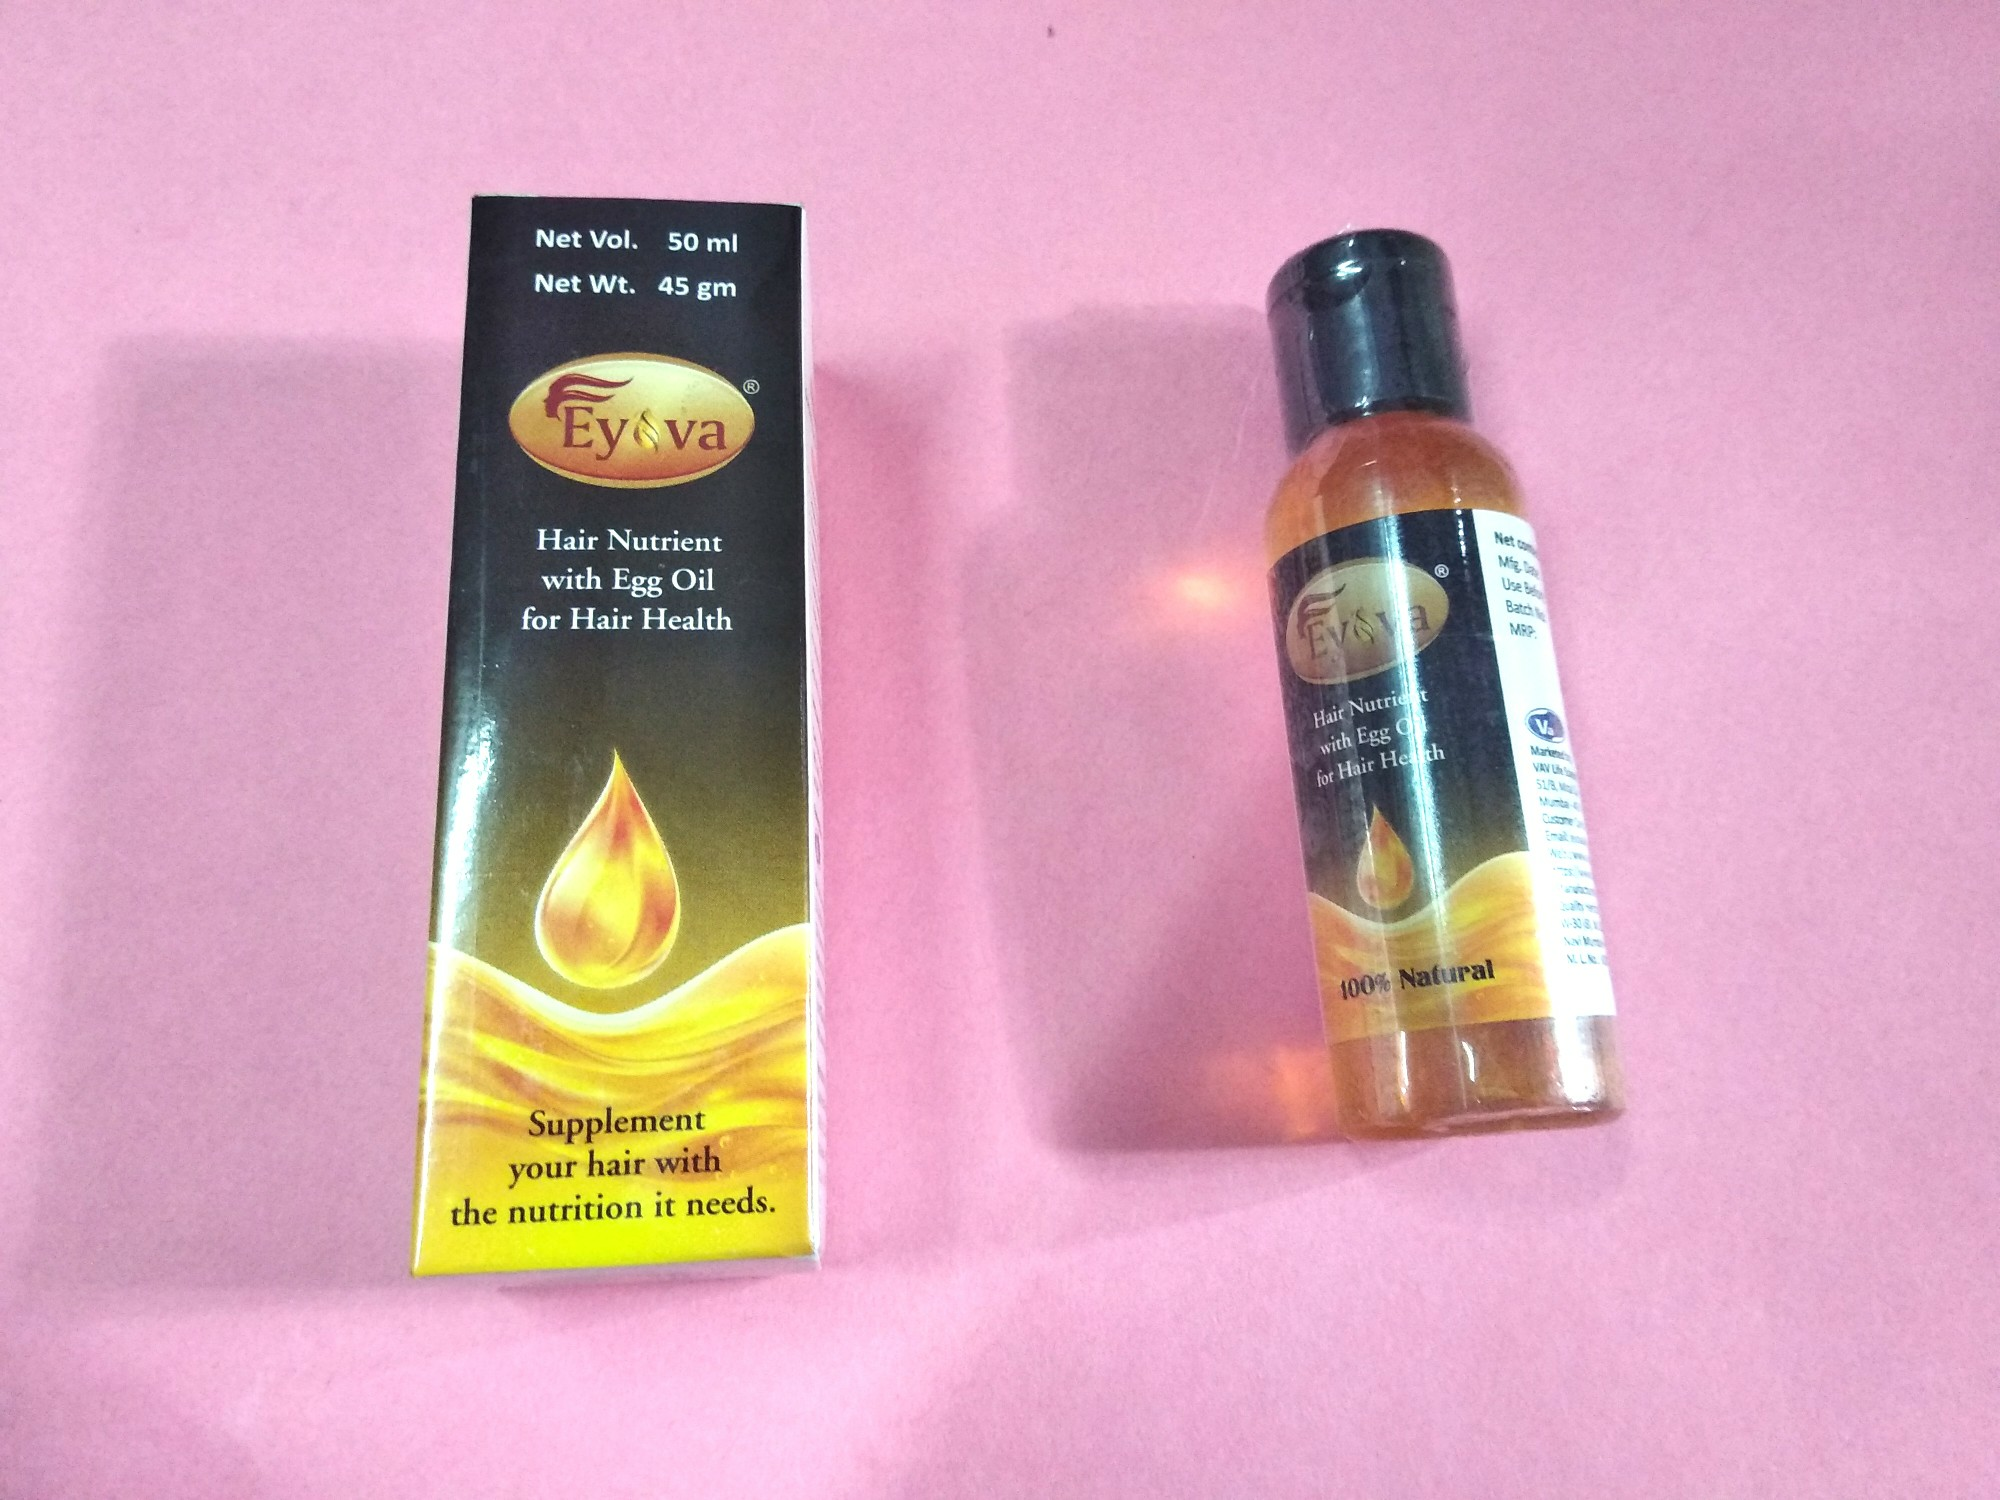 Eyova hair oil  World's 1st egg oil (hair nutrient with egg oil for hair health) image